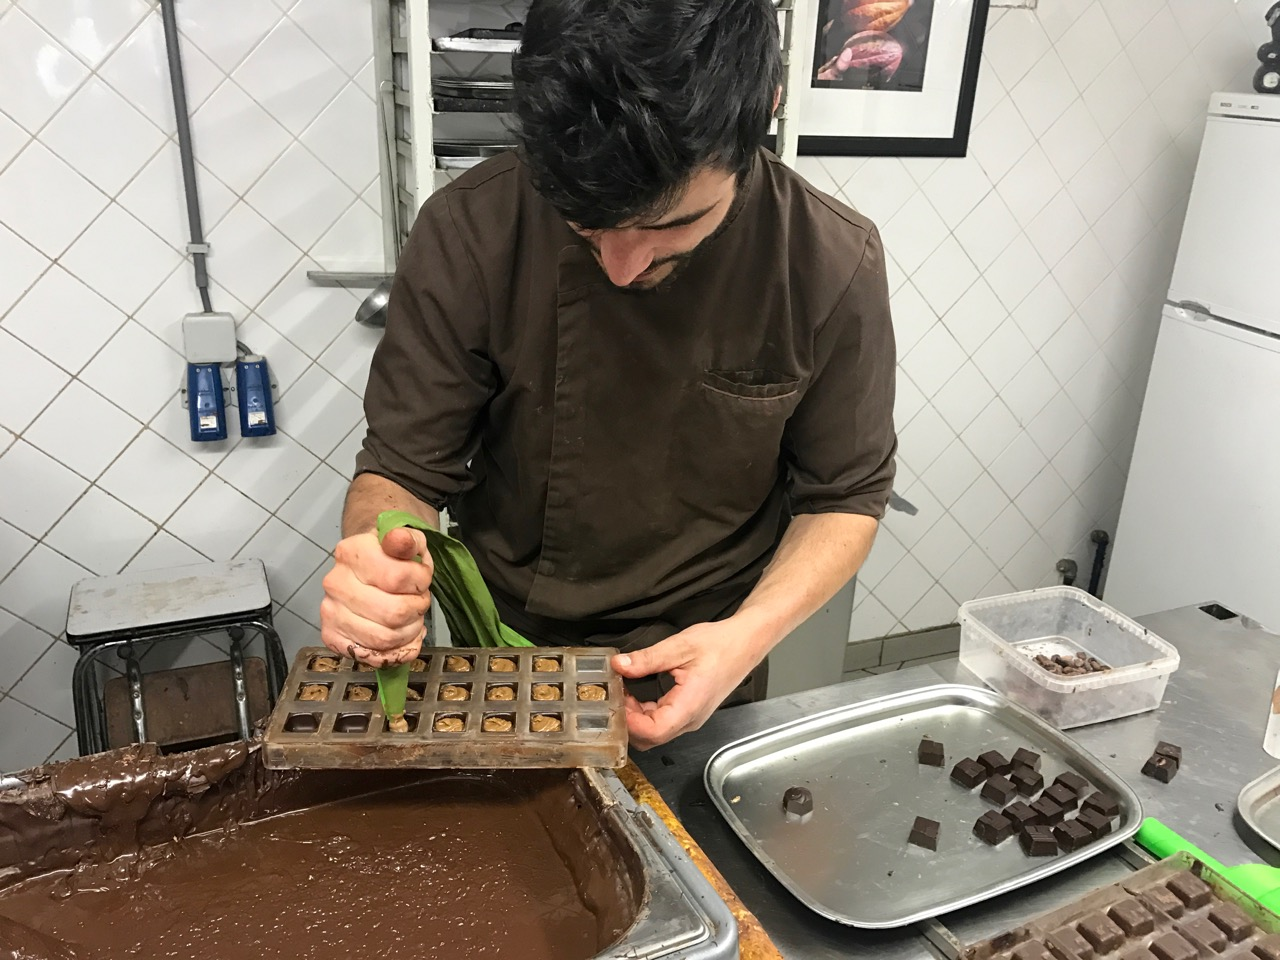 The choclatier at the Chocolate Museum was amazing!